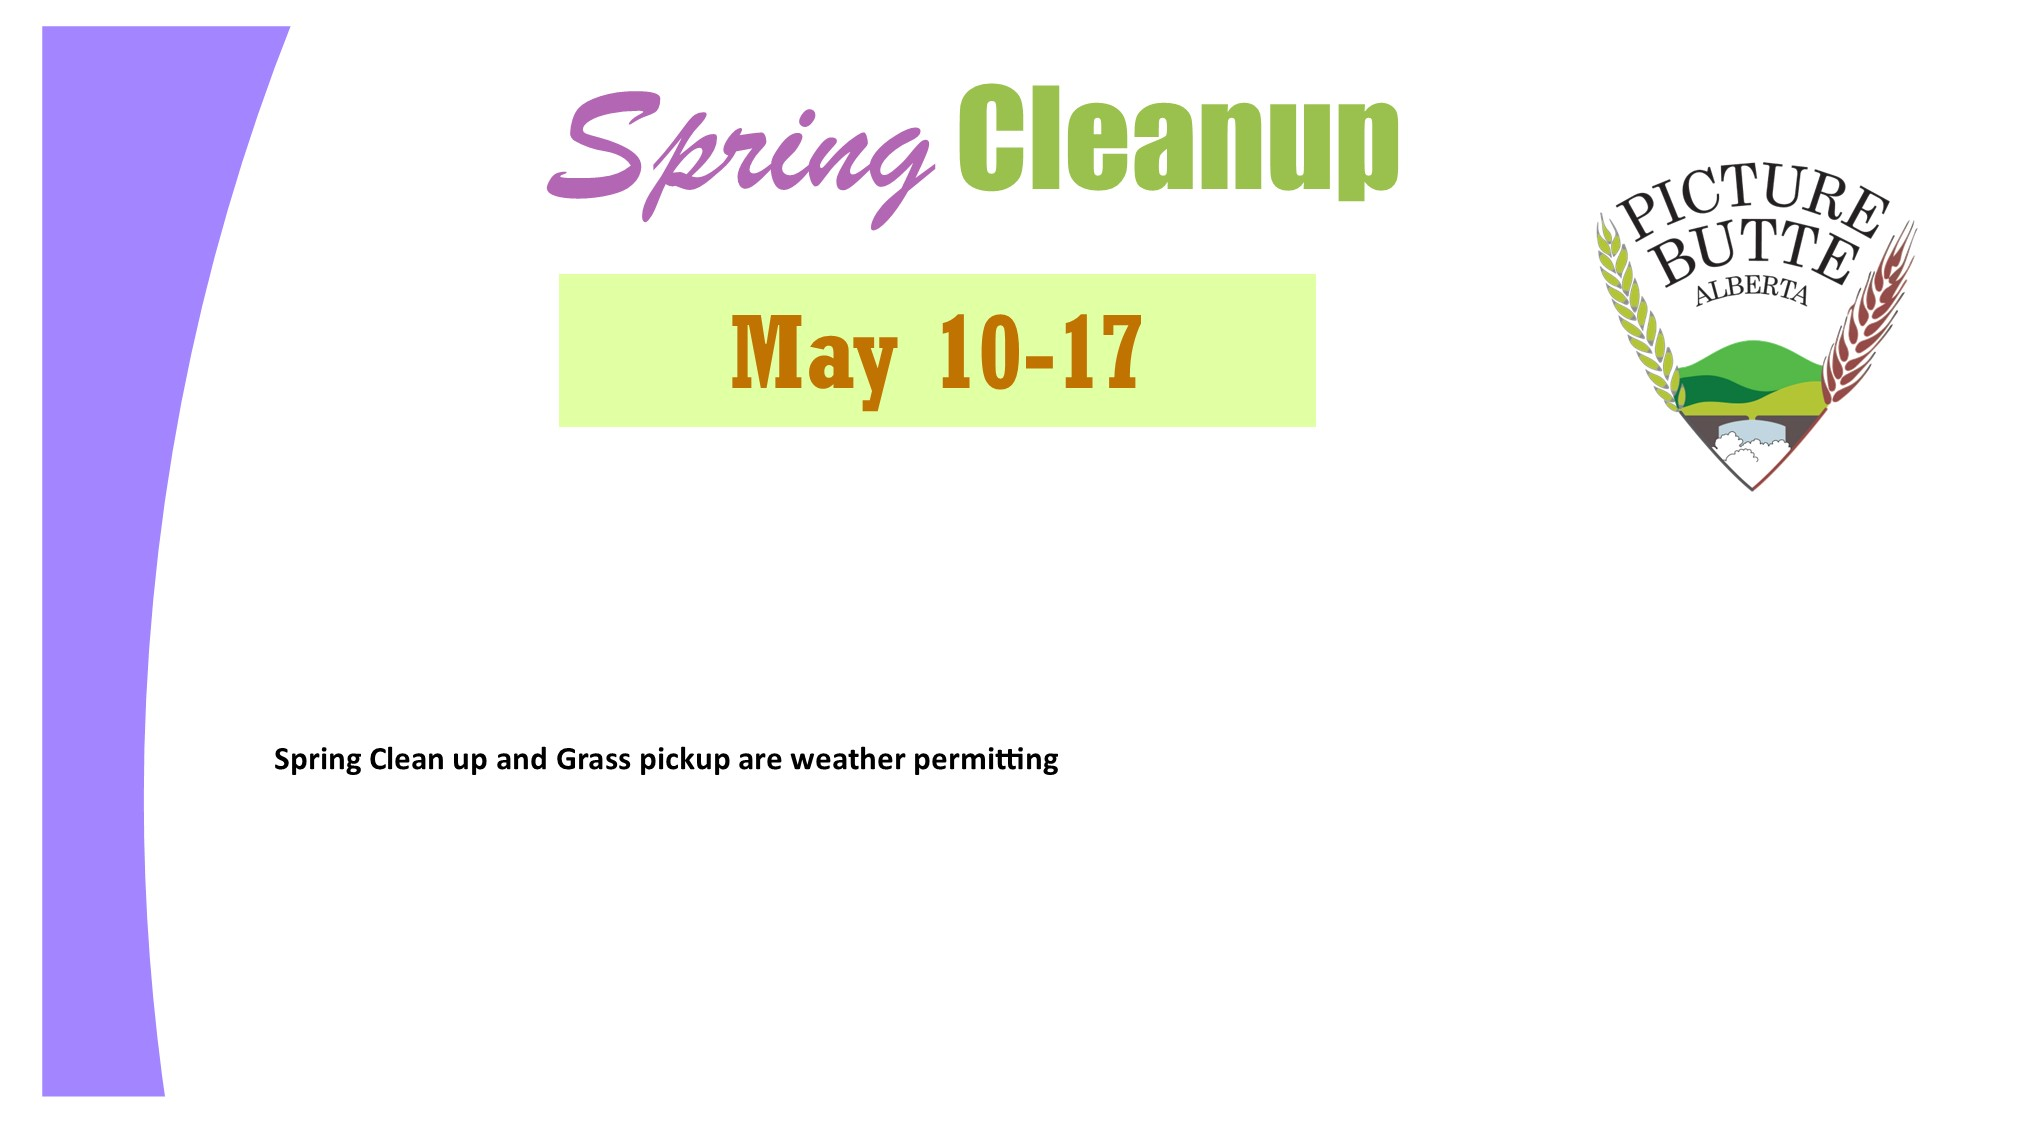 <div id=slideshow_title>Spring Cleanup May 10-17</div> <br>Grass pickup every Tuesday starting May 4th. Click the photo for more information.